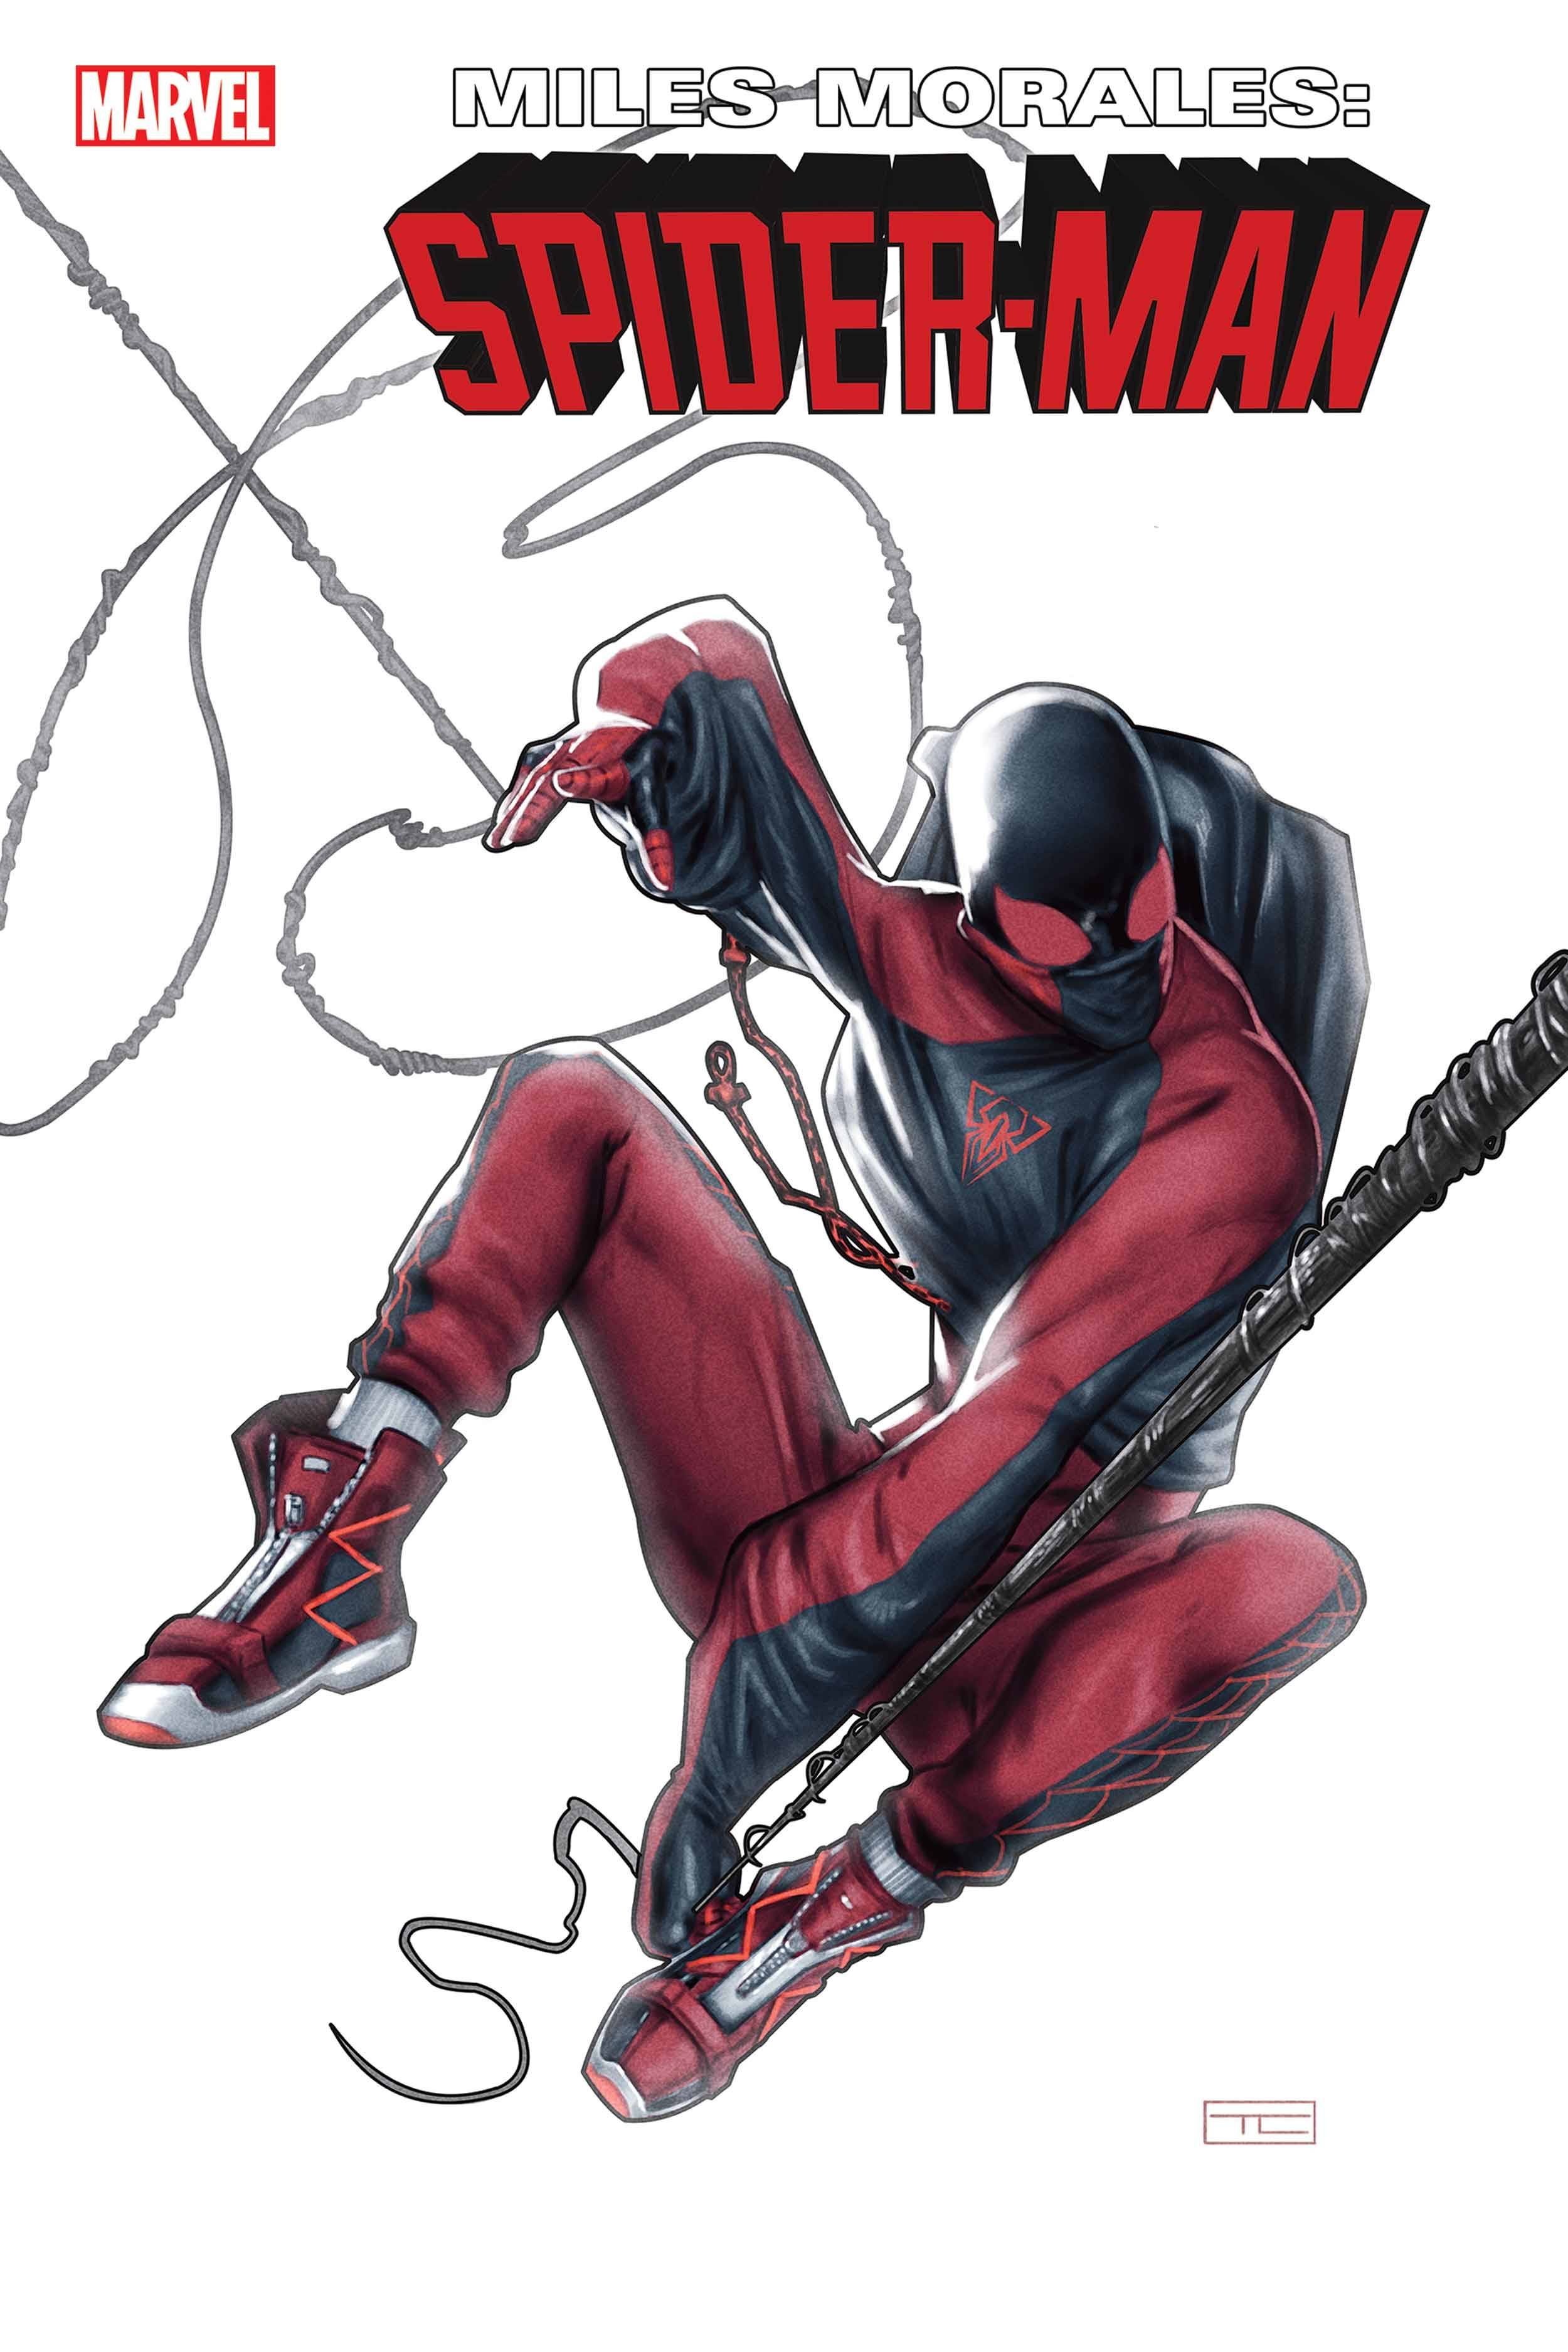 MILES MORALES SPIDER-MAN #30 Cover